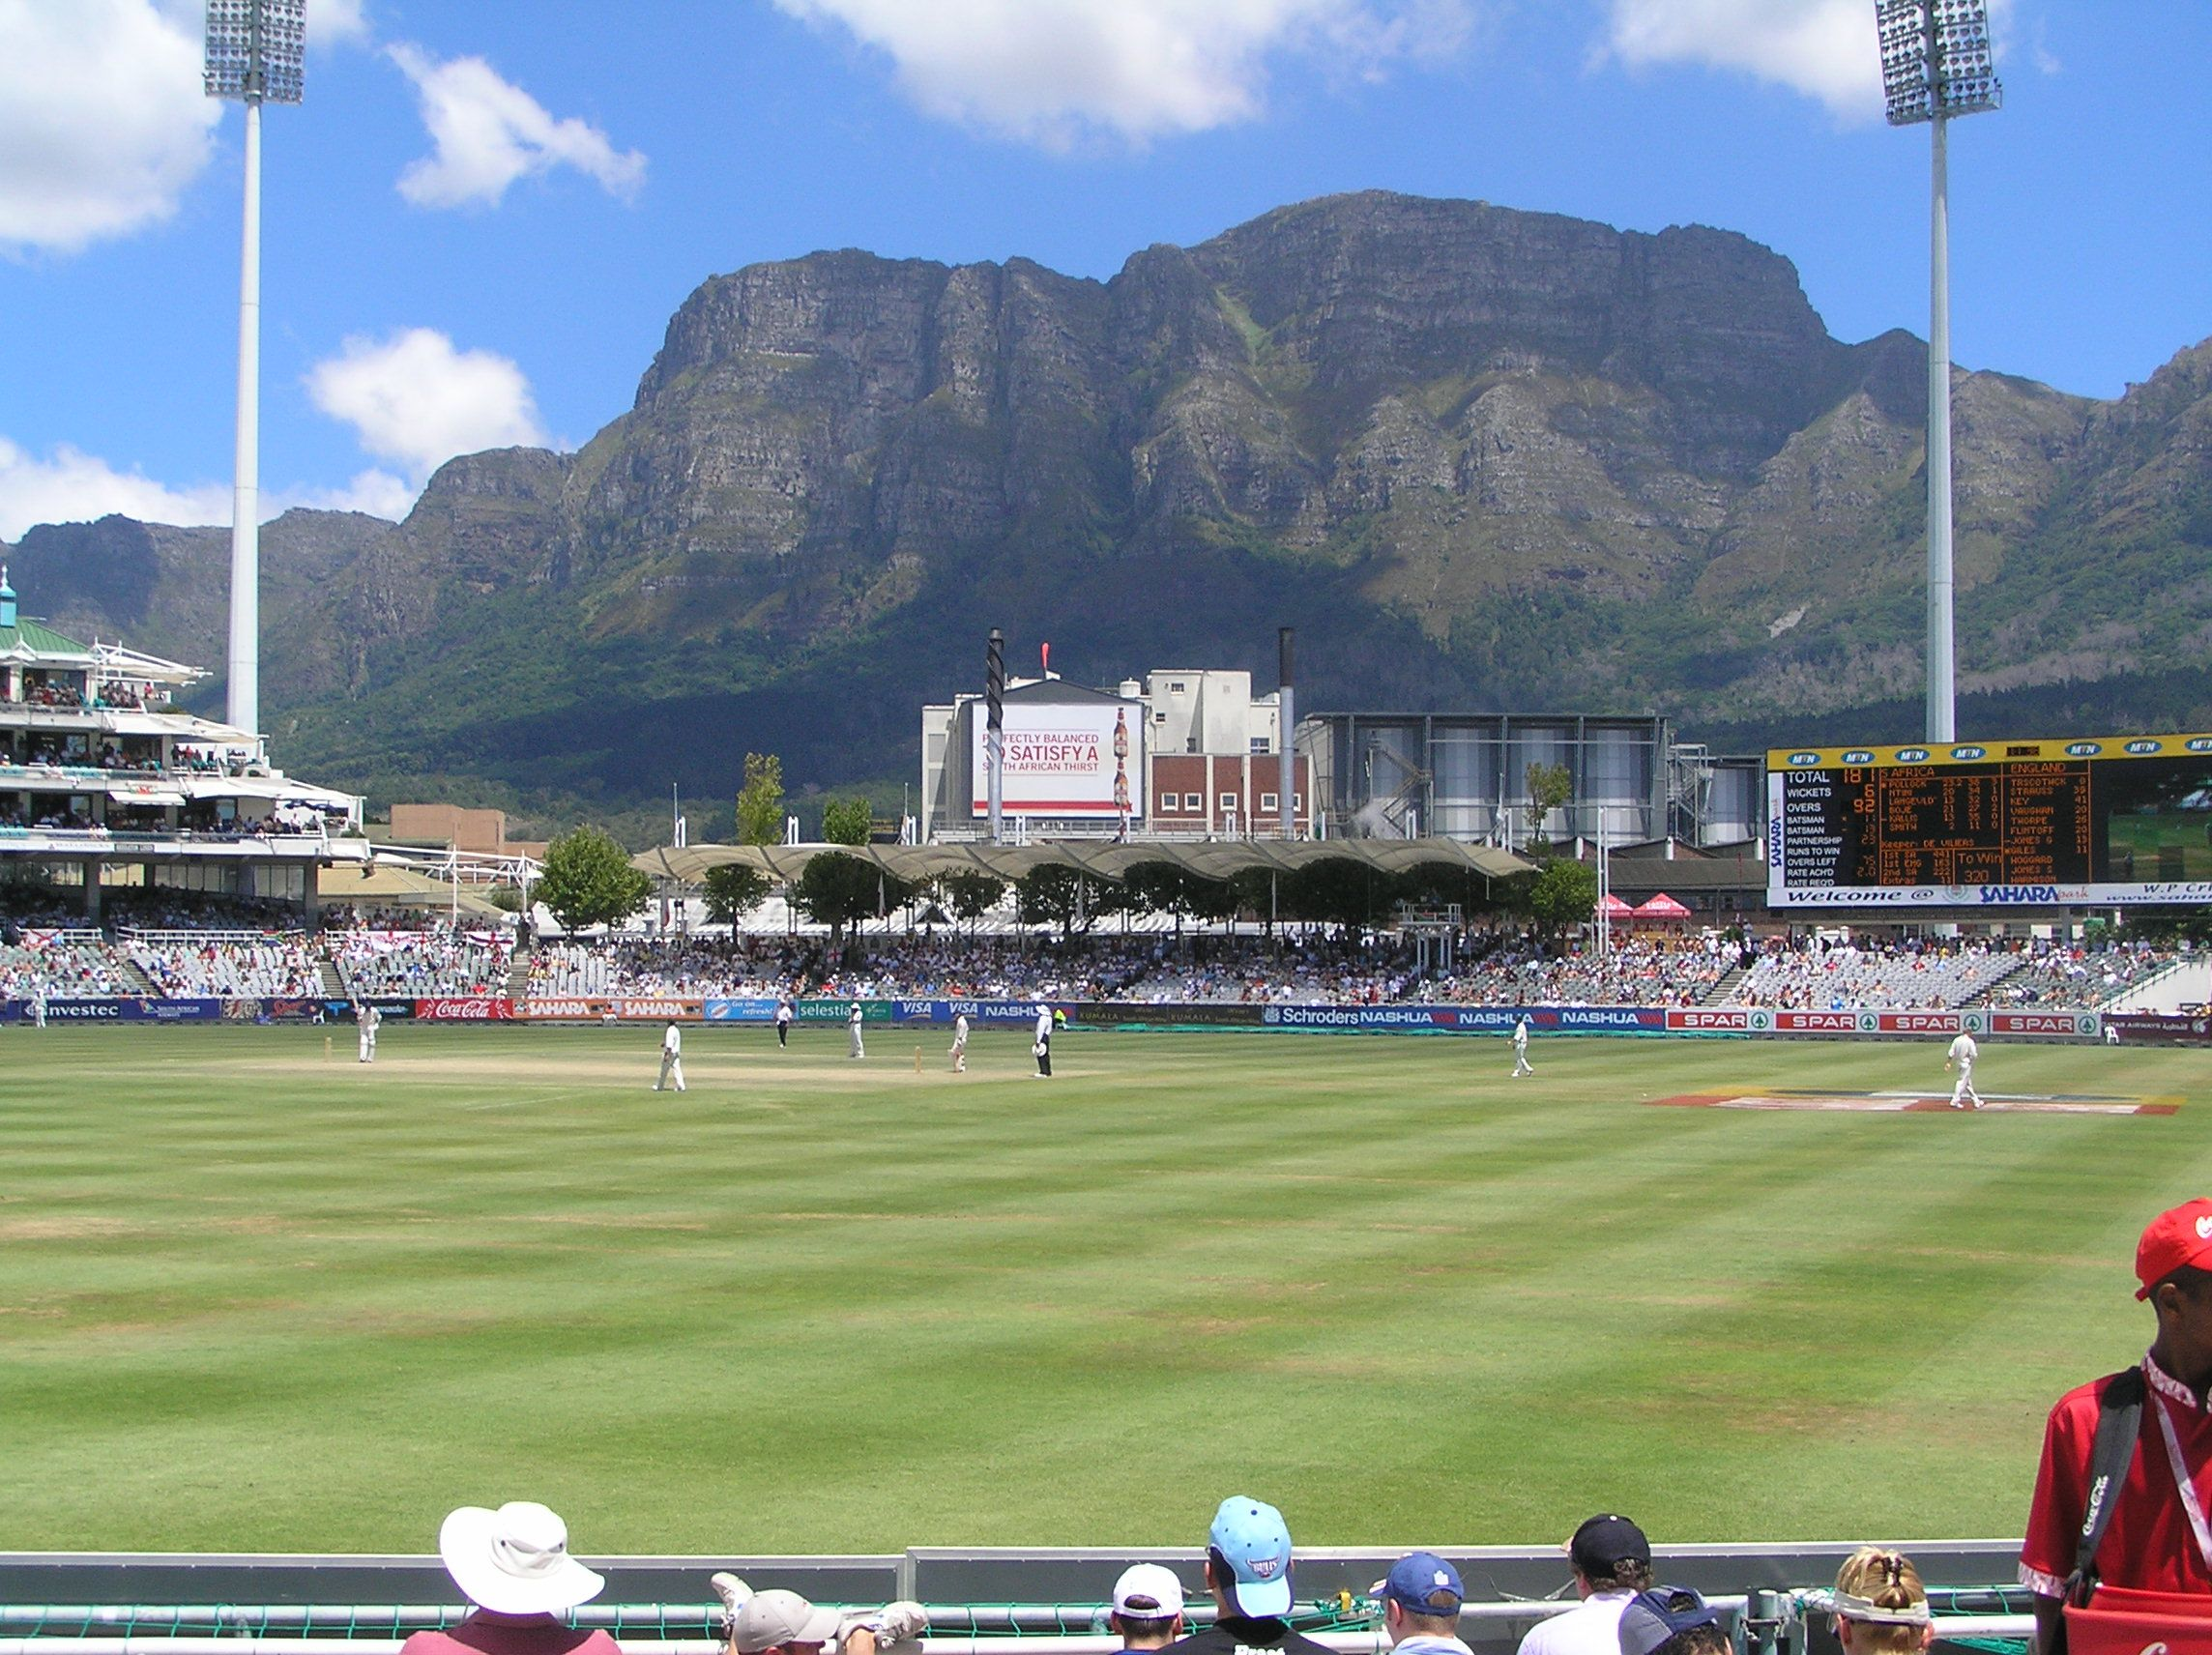 See A Cricket Game In The Spectacular Stadium In Cape Town South Africa Cape Town Accommodation Cape Town South Africa South Africa